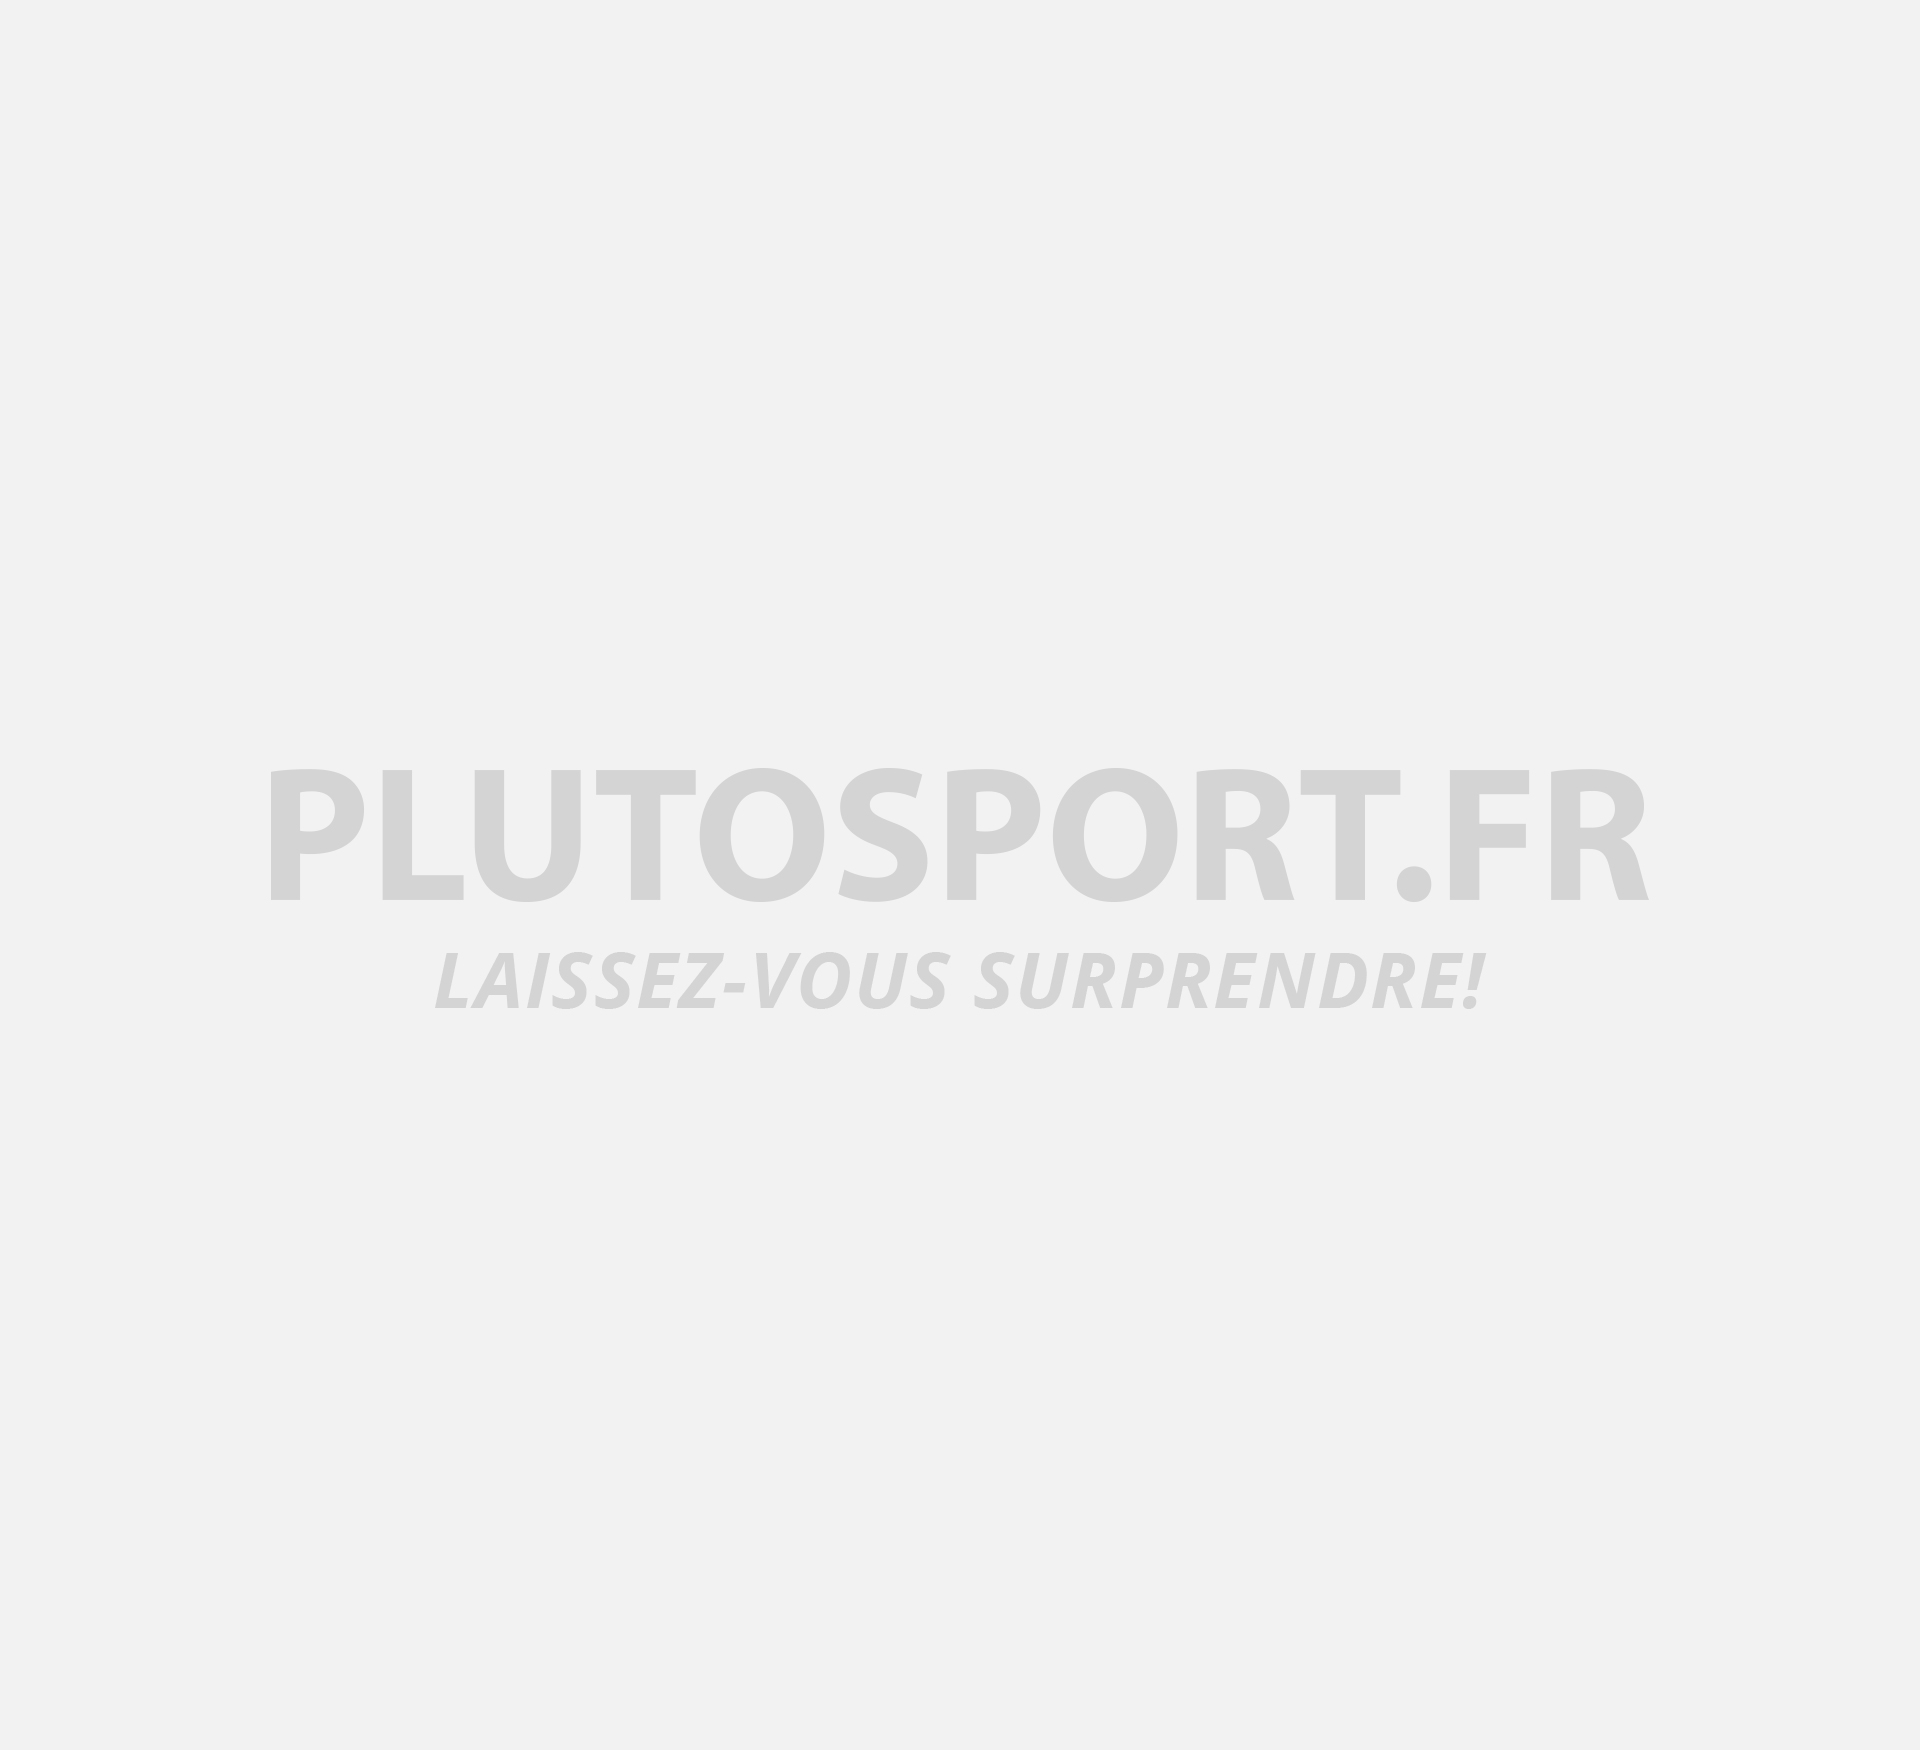 Coolslide Halloumi Cruiser Skateboard Enfants